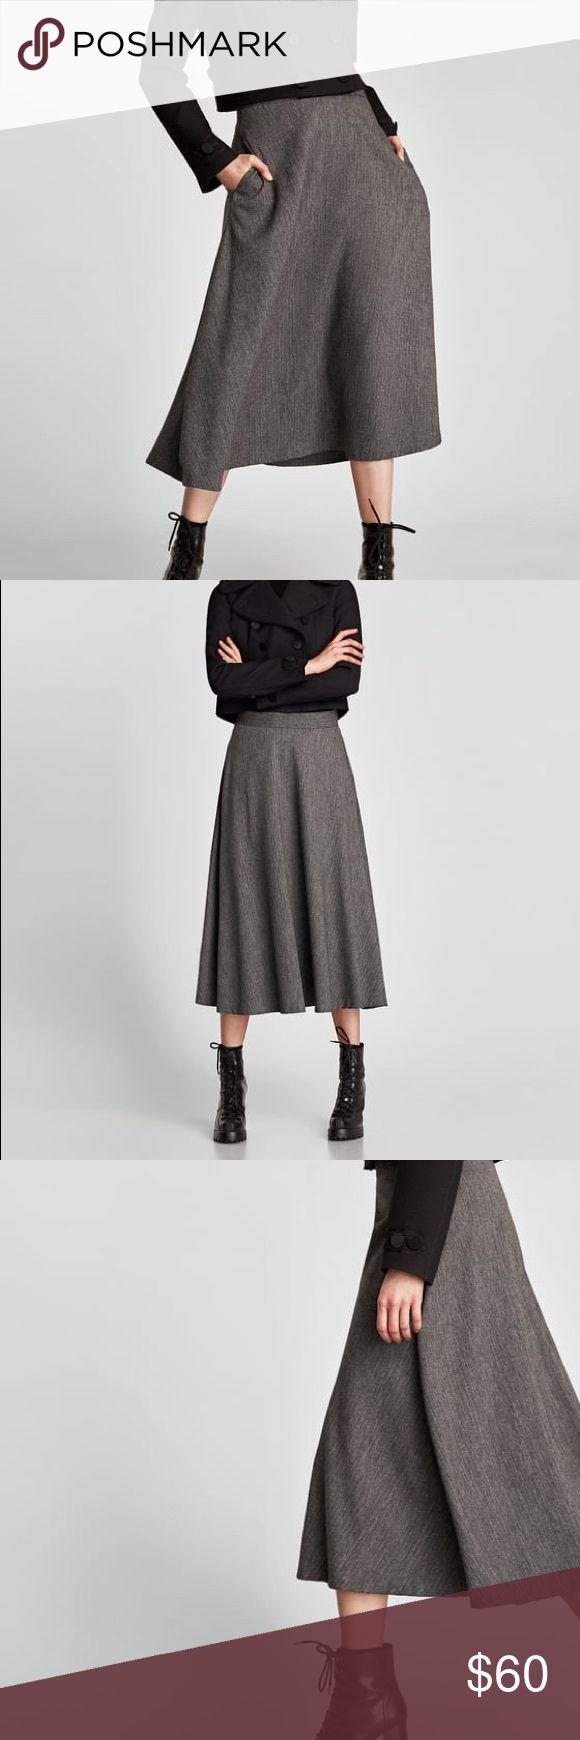 •zara midi flounce skirt• A-line skirt with side pockets and invisible zip fastening in the back.  HEIGHT OF MODEL: 178 cm. / 5′ 10″   43% polyester, 26% wool, 15% viscose, 14% polyamide, 2% elastane Zara Skirts Midi